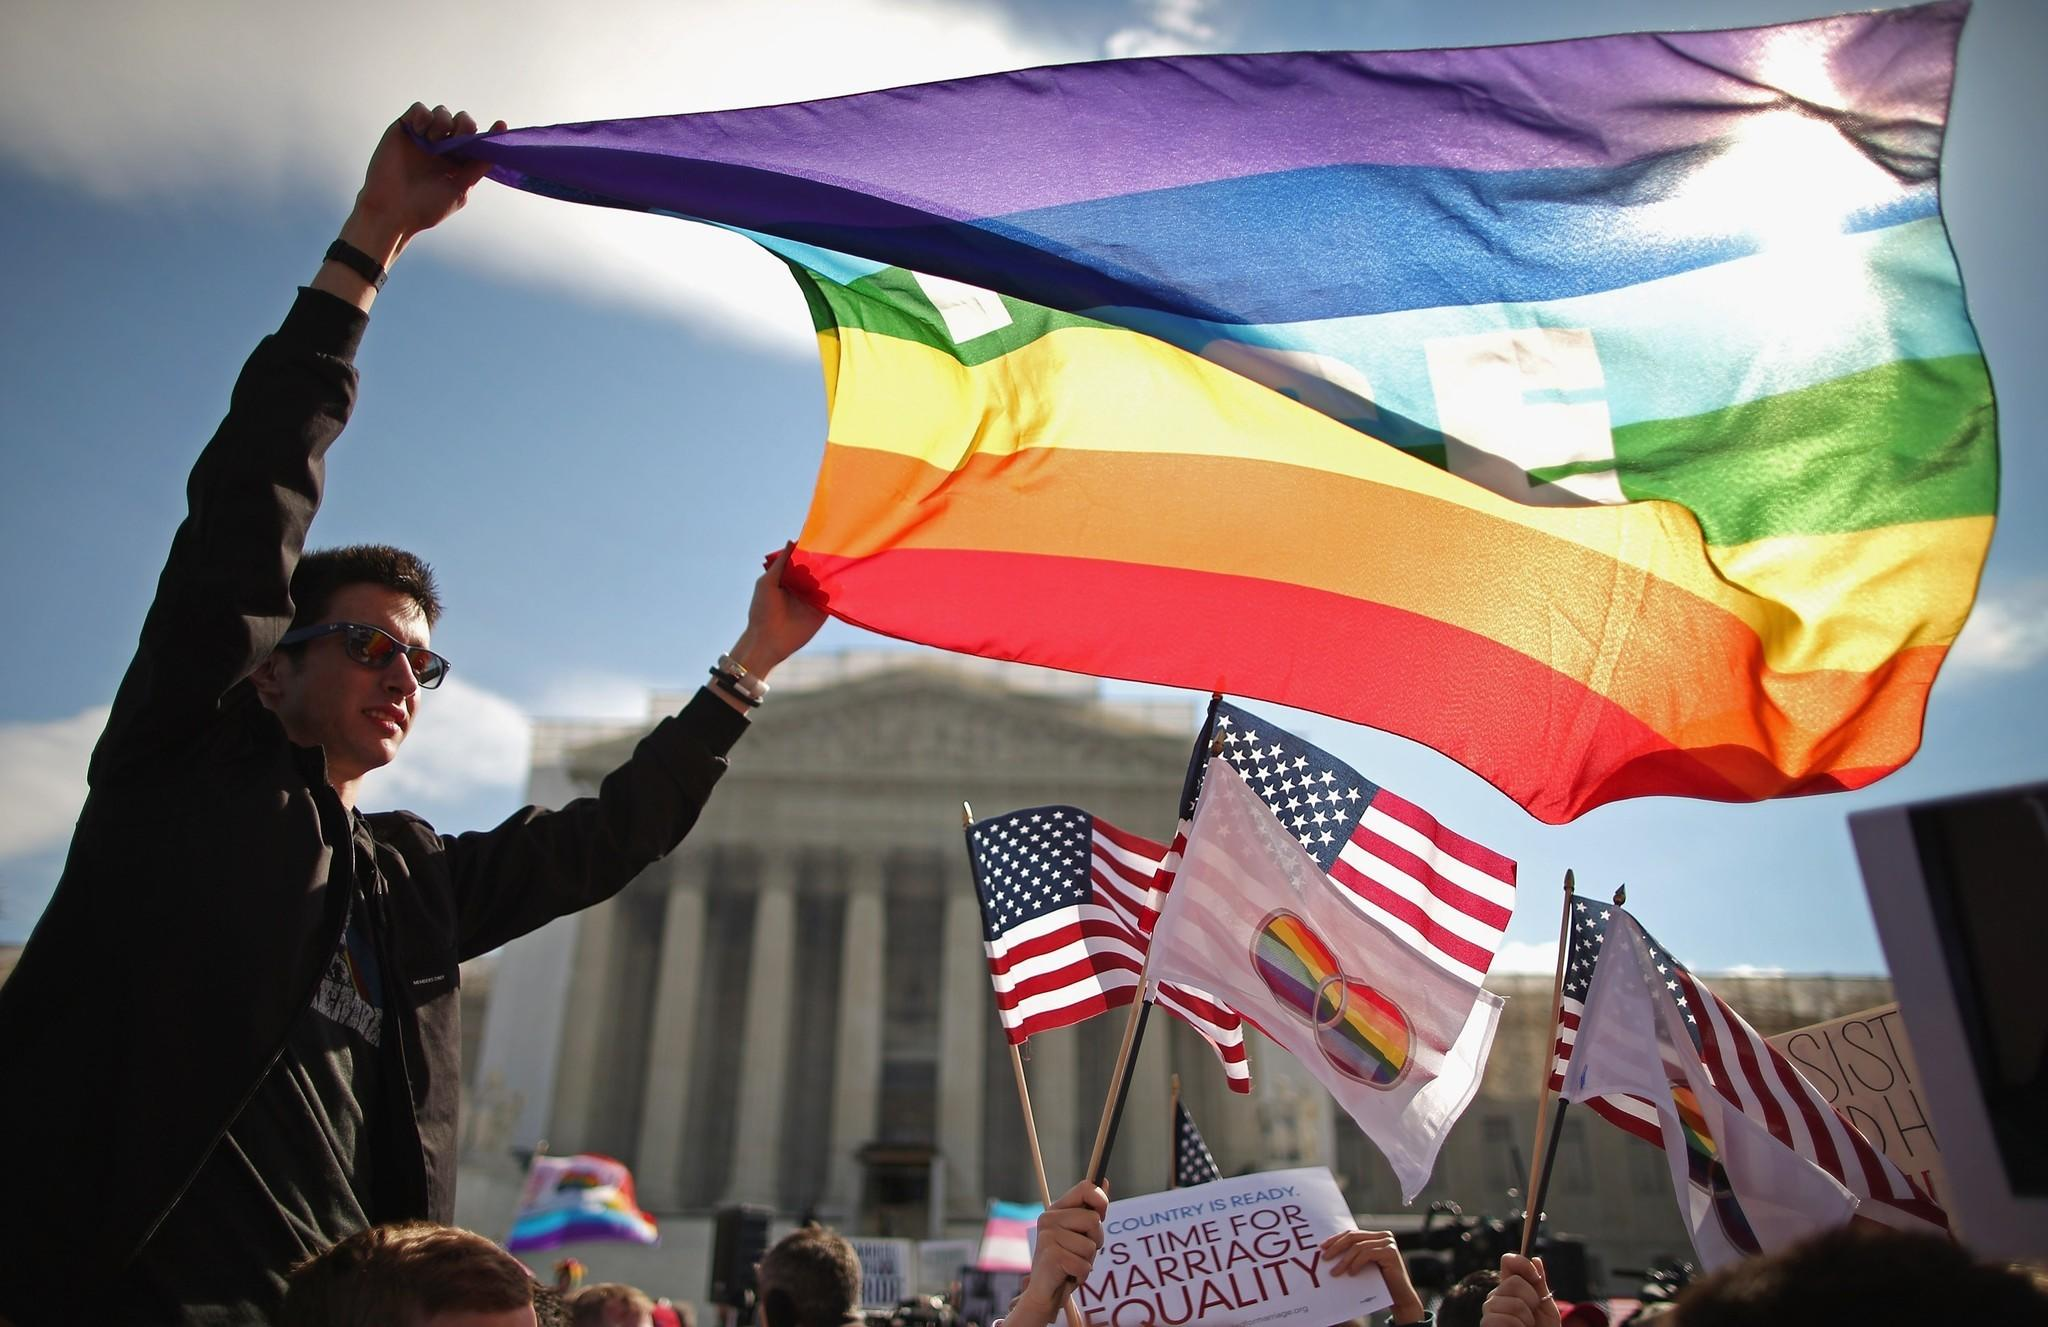 Hundreds rally outside the Supreme Court building in Washington, D.C., during oral arguments in a case challenging the Defense of Marriage Act last March.